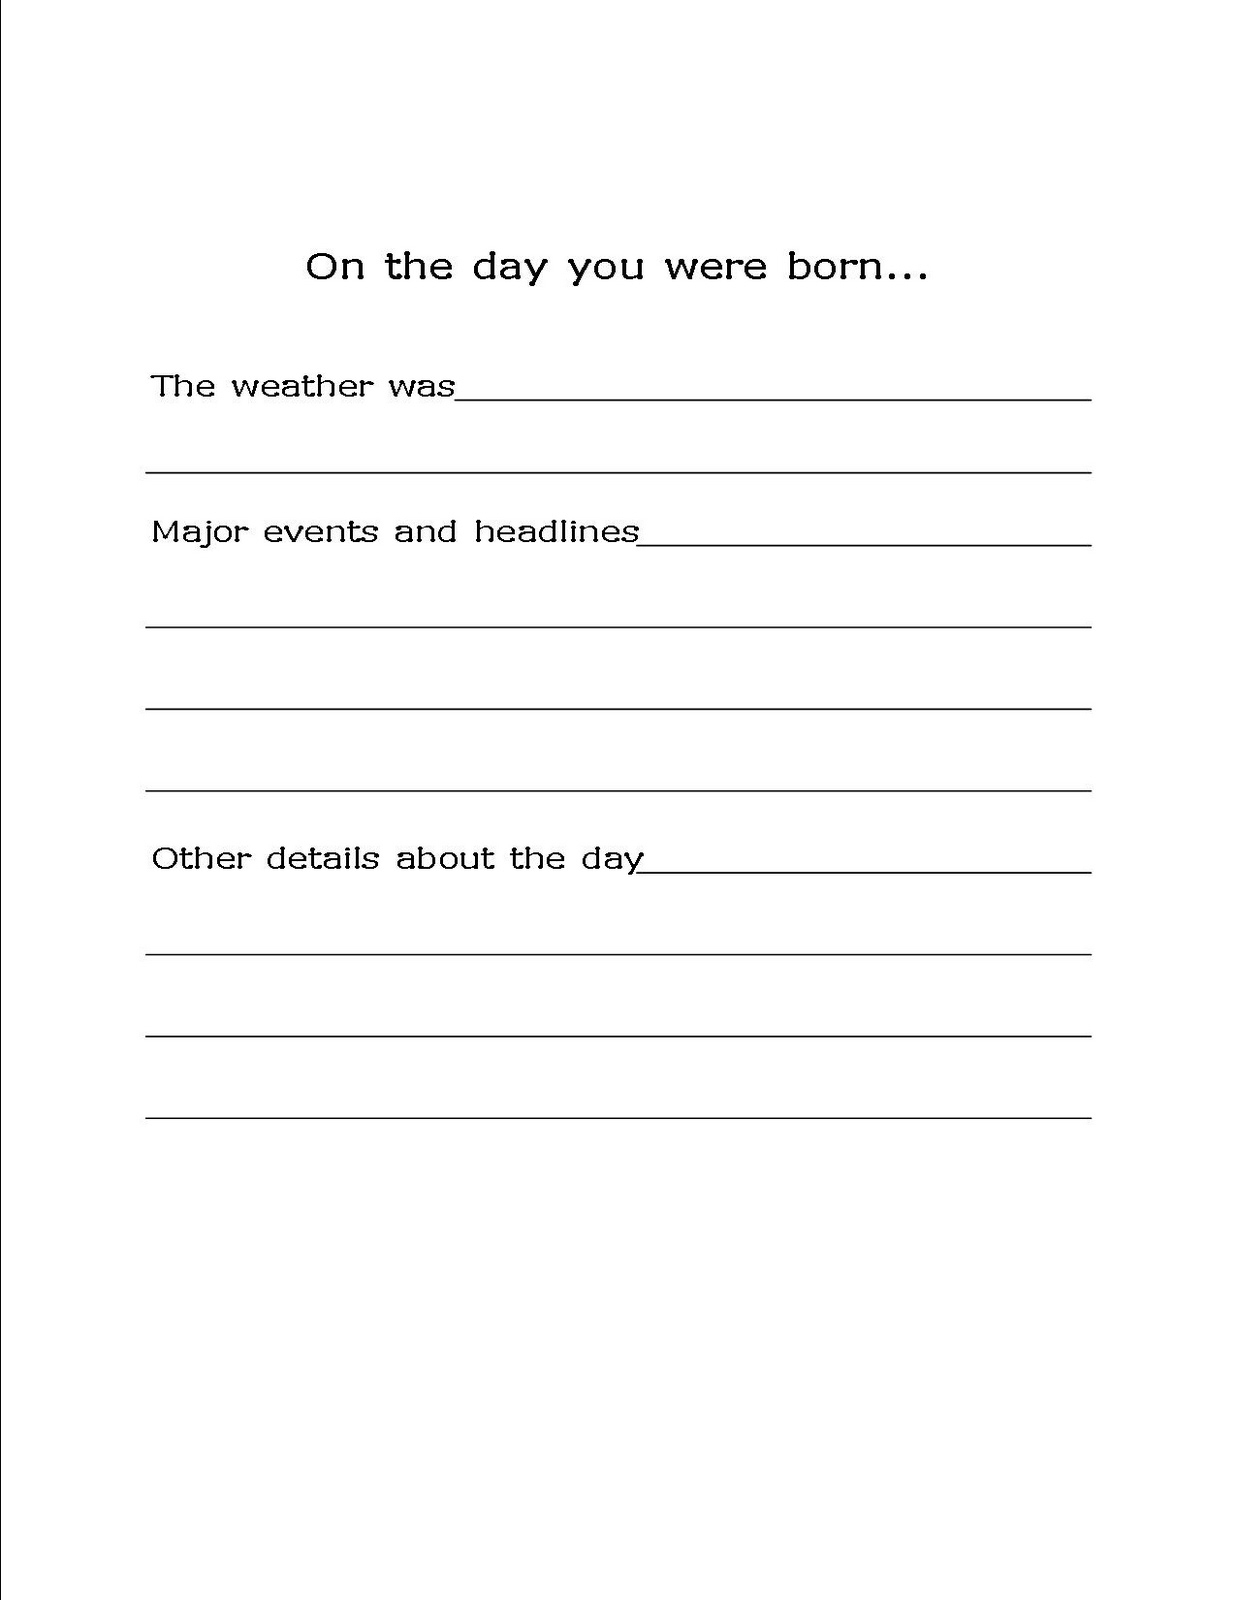 Free Printables Archives - Bare Feet On The Dashboard - The Year You Were Born Printable Free